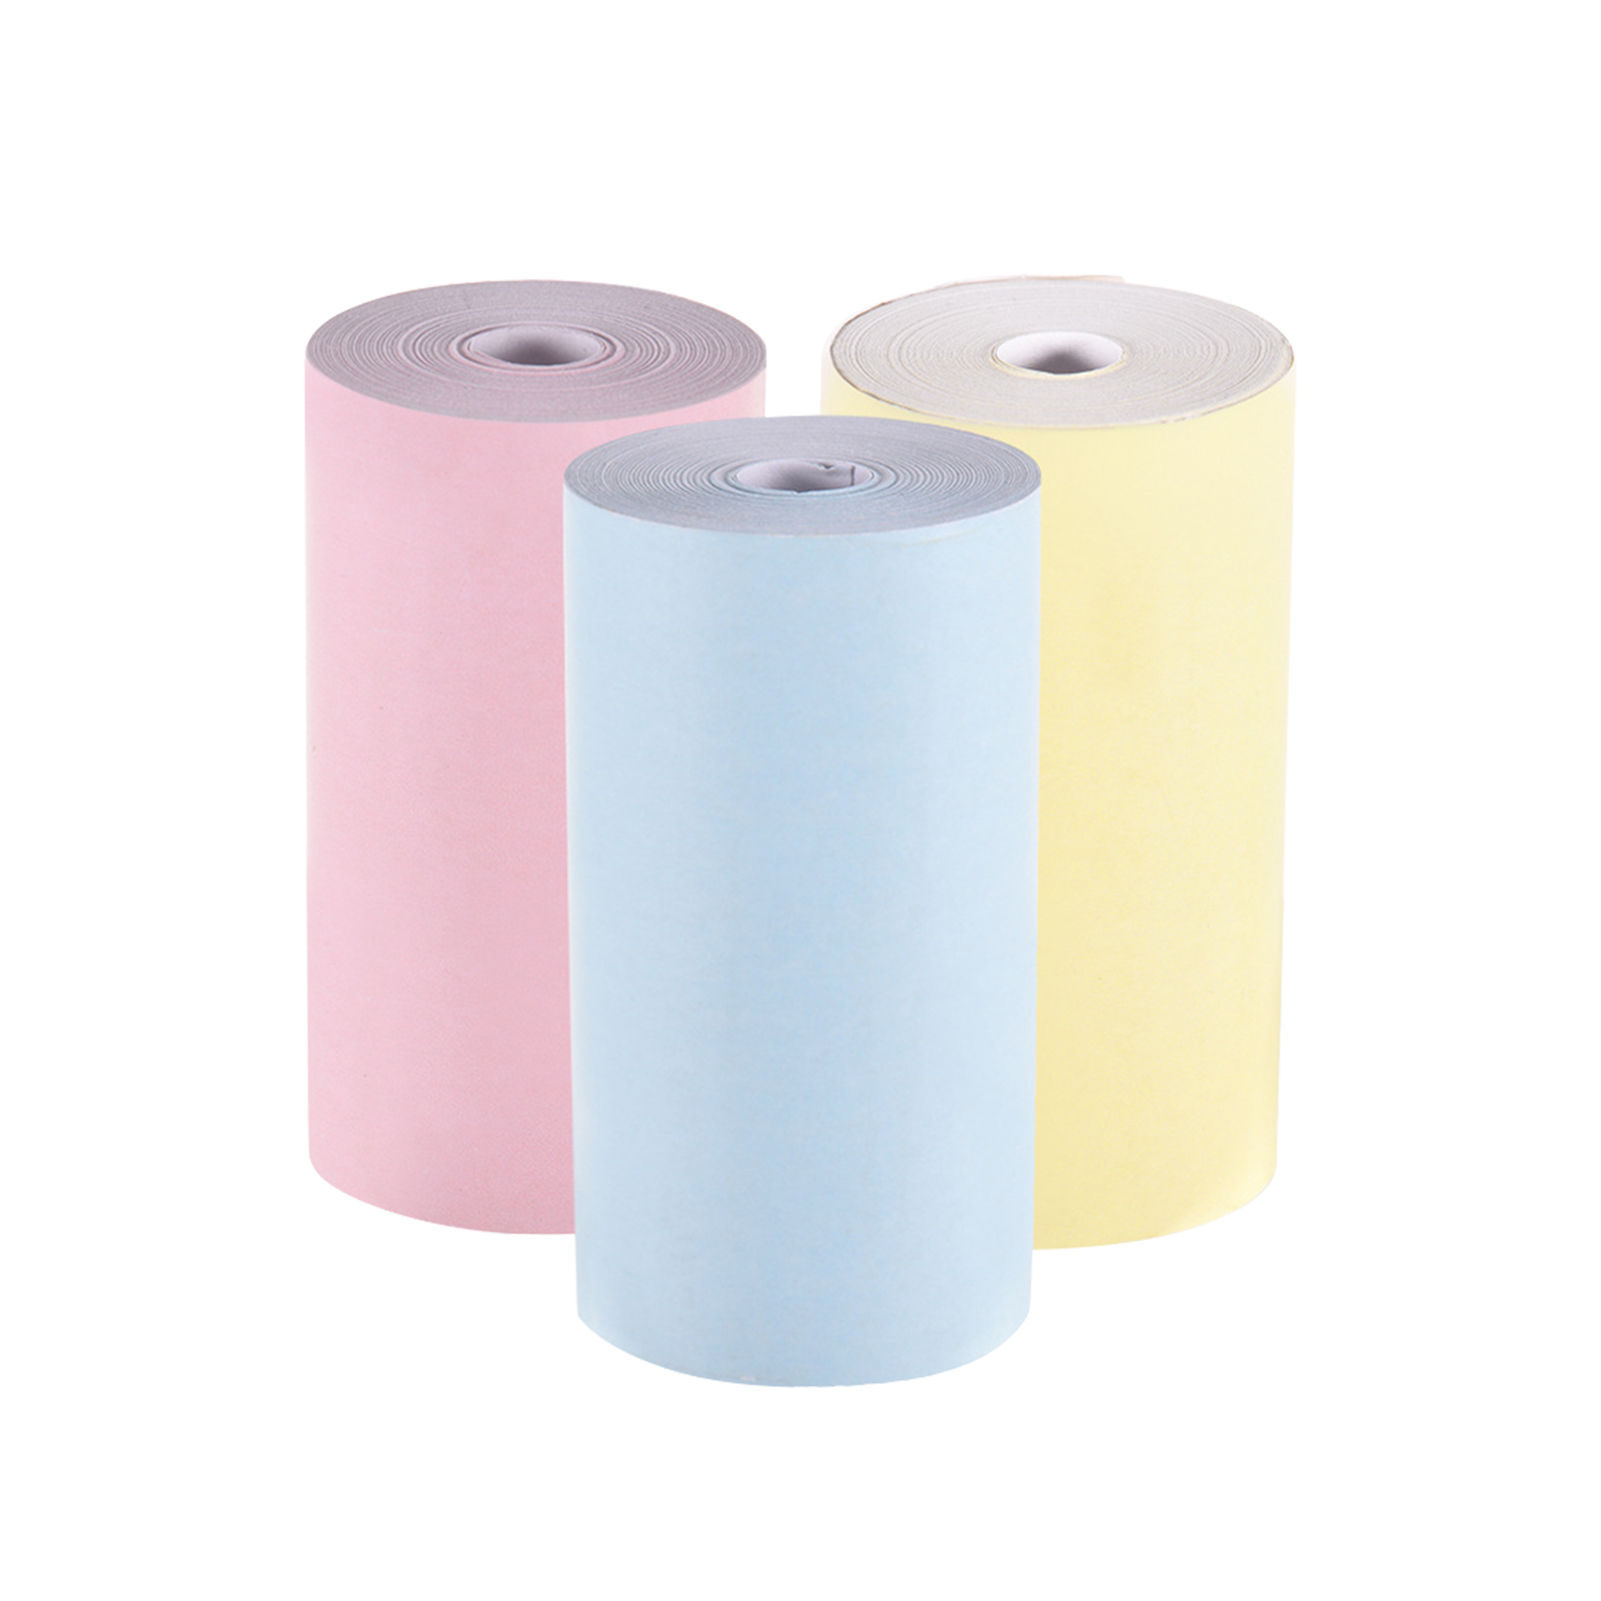 3colors/set Small 57x30mm Solid Portable Photo Printer Banks Printing Multifunction Hotel Smooth Mini Thermal Paper Supermarket